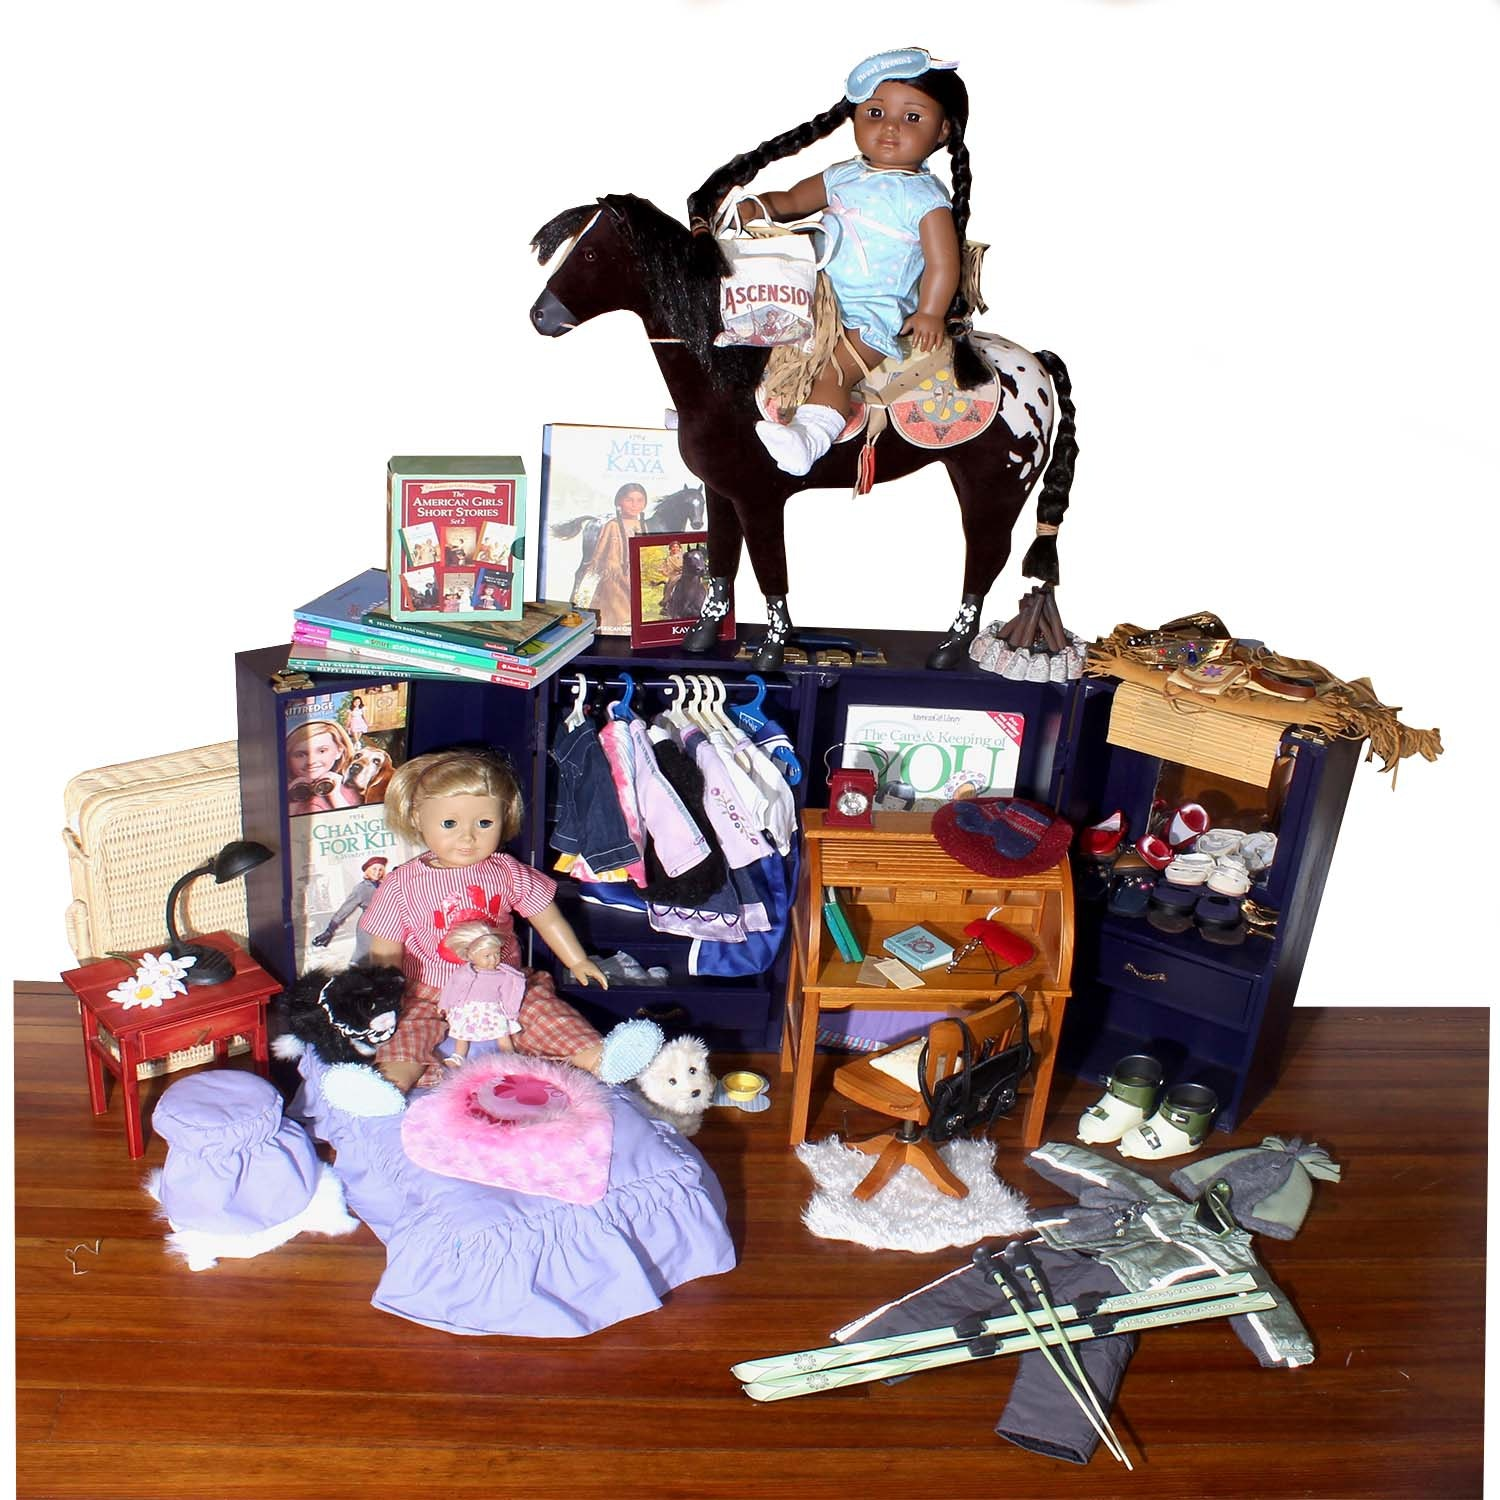 American Girl Dolls Kaya, Kit and Accessories Including Bitty Baby